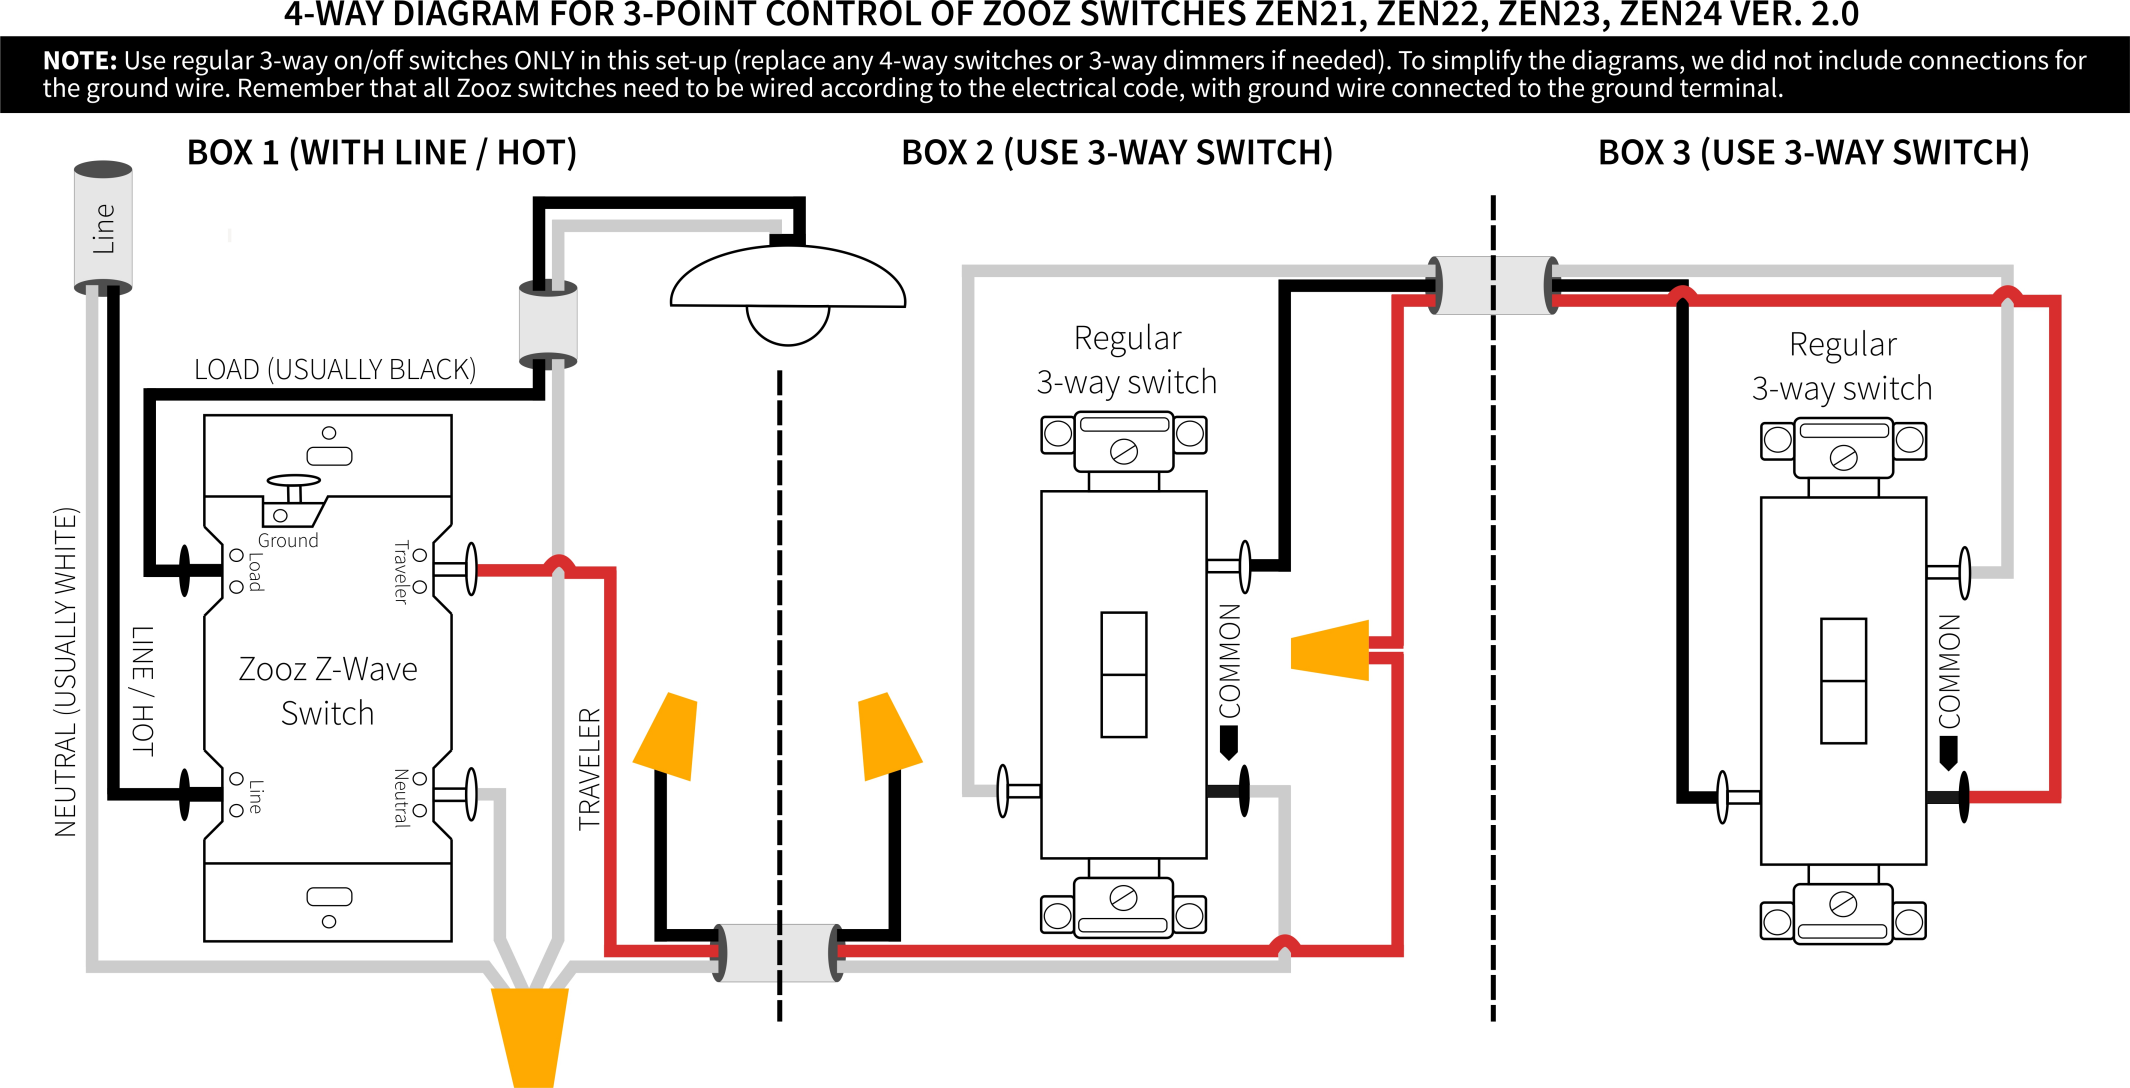 Four Wiring A Schematic Box | Wiring Diagram Liries on 4-way switch problems, three-way switch diagram residential, 4-way switch with dimmer diagram, 4-way switch work diagram, 4-way switch diagram us, 4-way switch diagram 4 way switch with power to the, 4-way circuit diagram, 4-way switch diagram light,